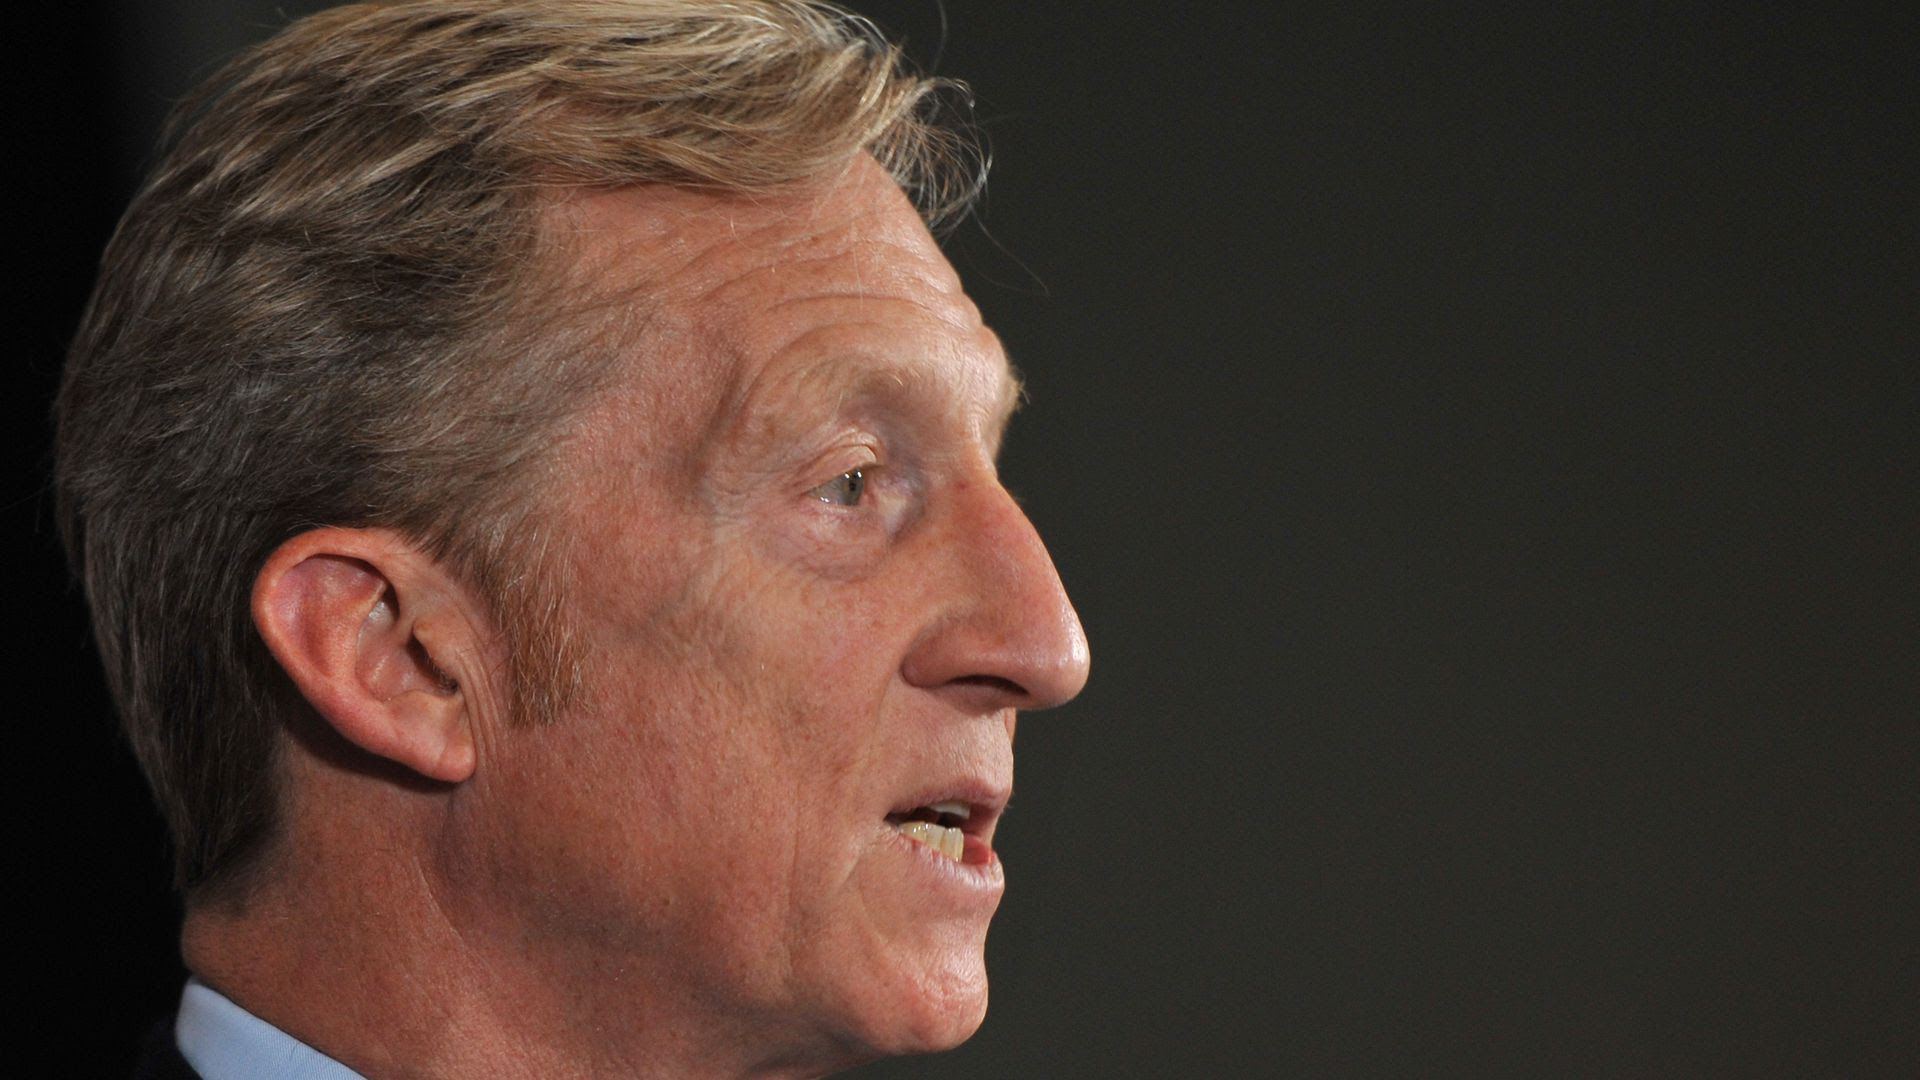 Best Free Registry Cleaner 2020 Climate activist Tom Steyer may revive 2020 presidential election